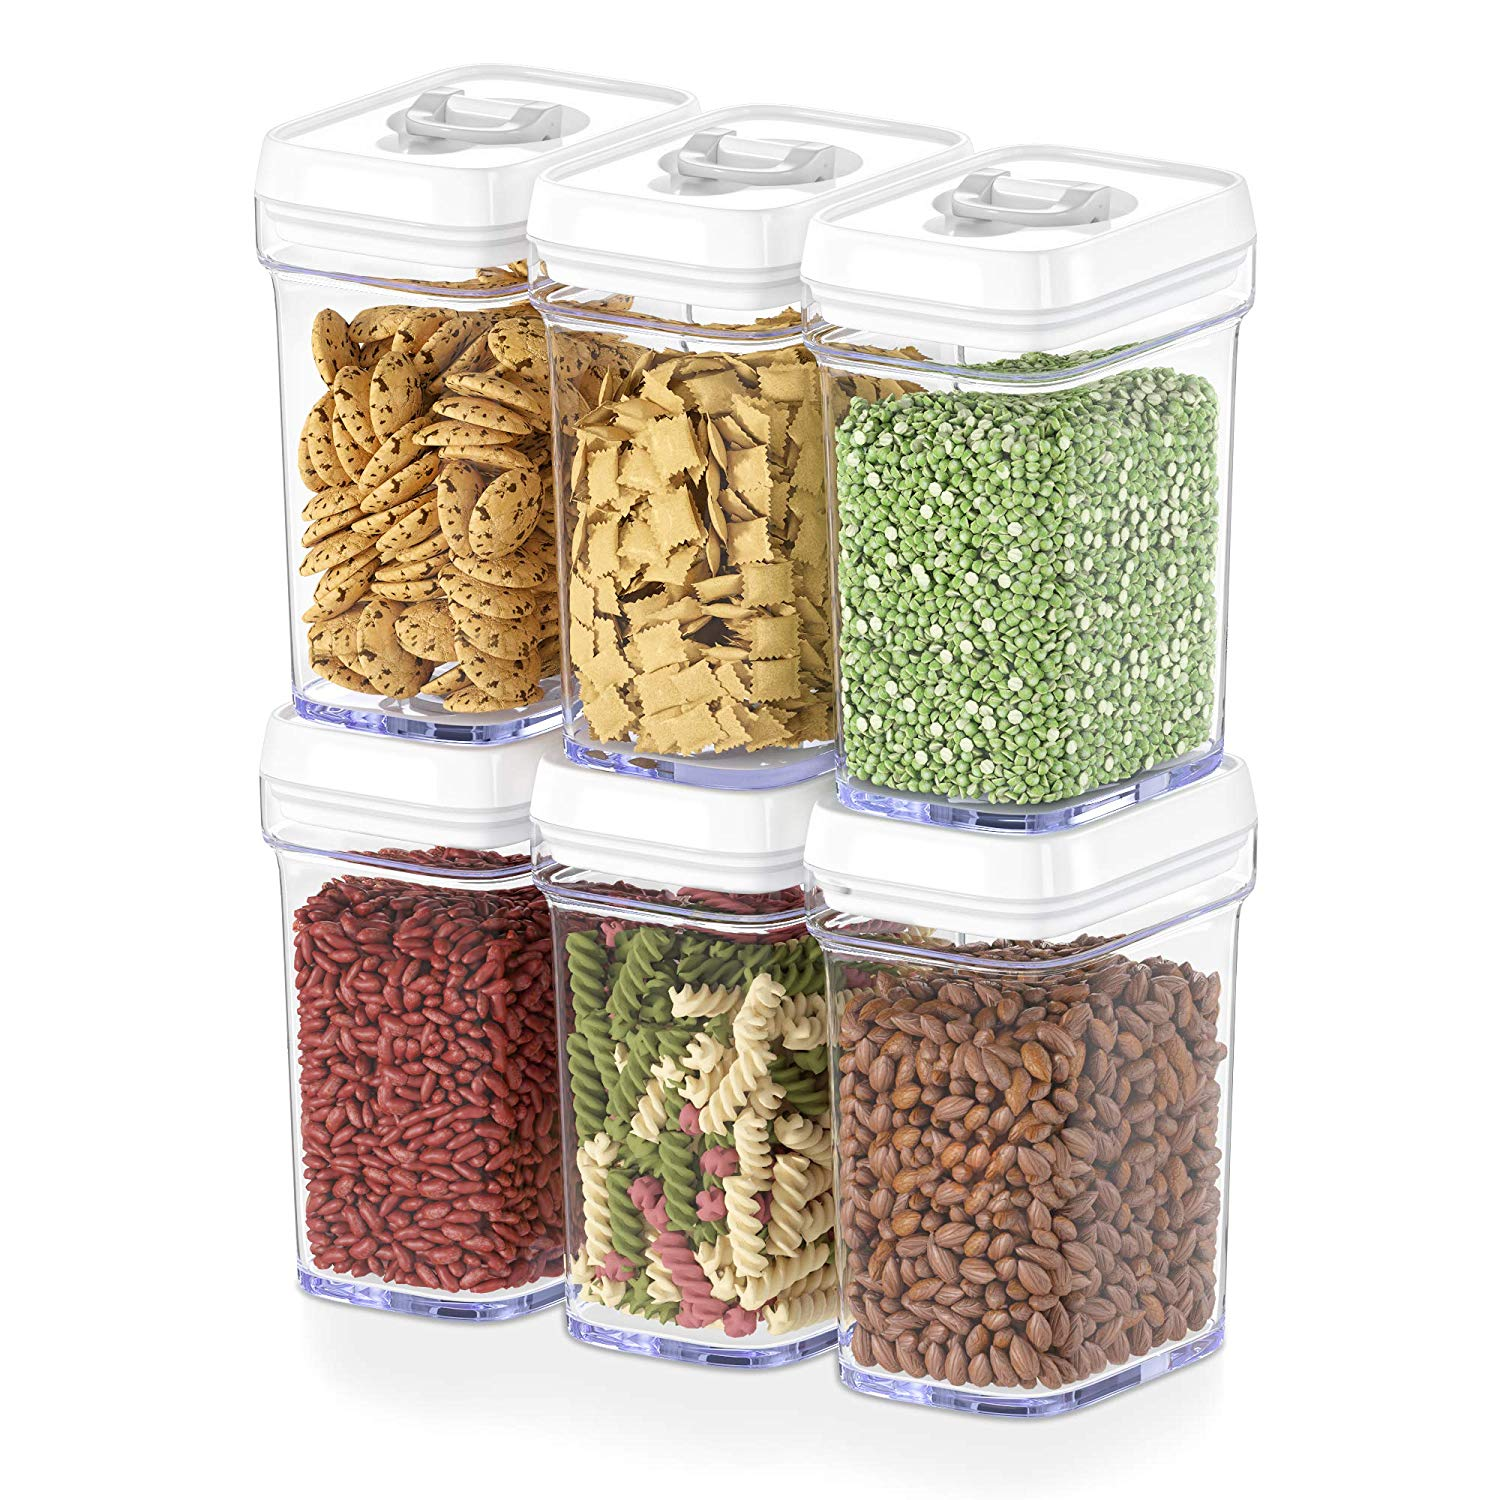 Snapware 10.8 Cup Rectangle Food Storage Container with SnapLock Lid # 1098424